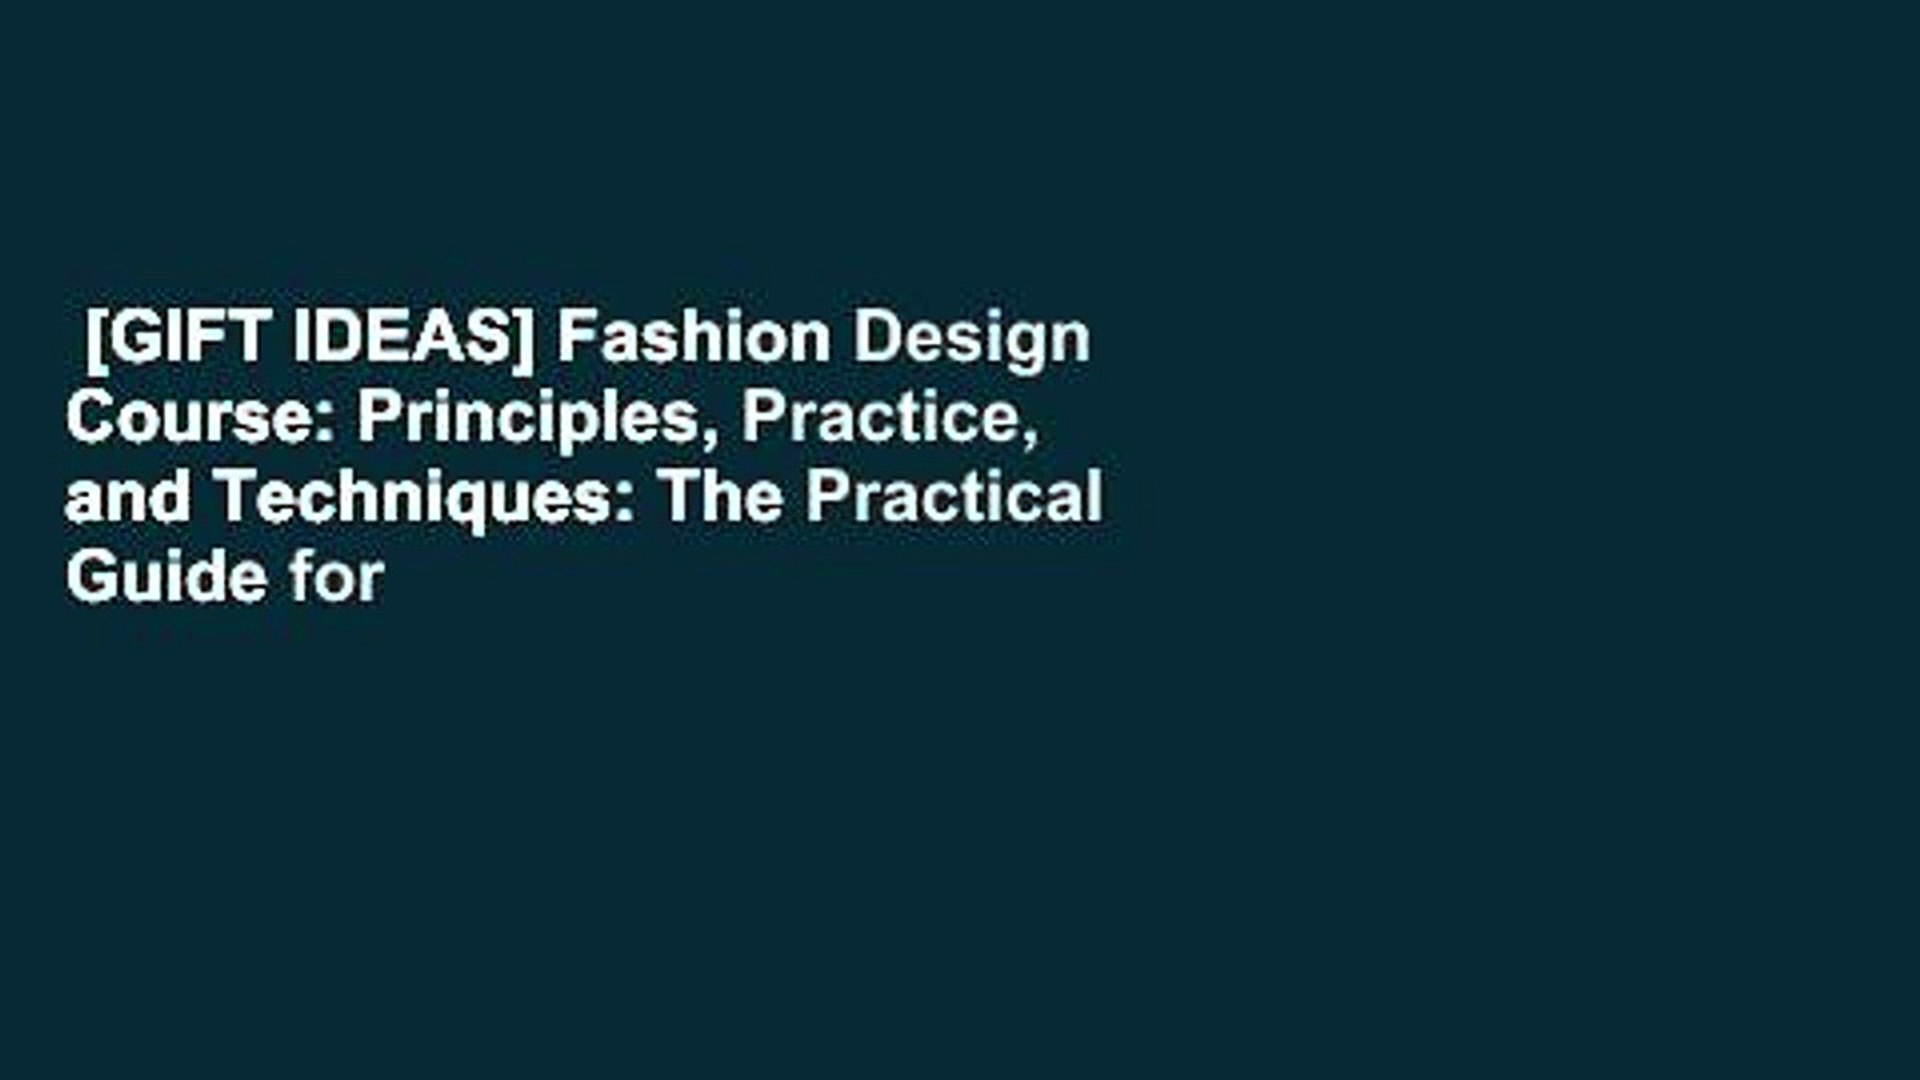 Gift Ideas Fashion Design Course Principles Practice And Techniques The Practical Guide For Video Dailymotion